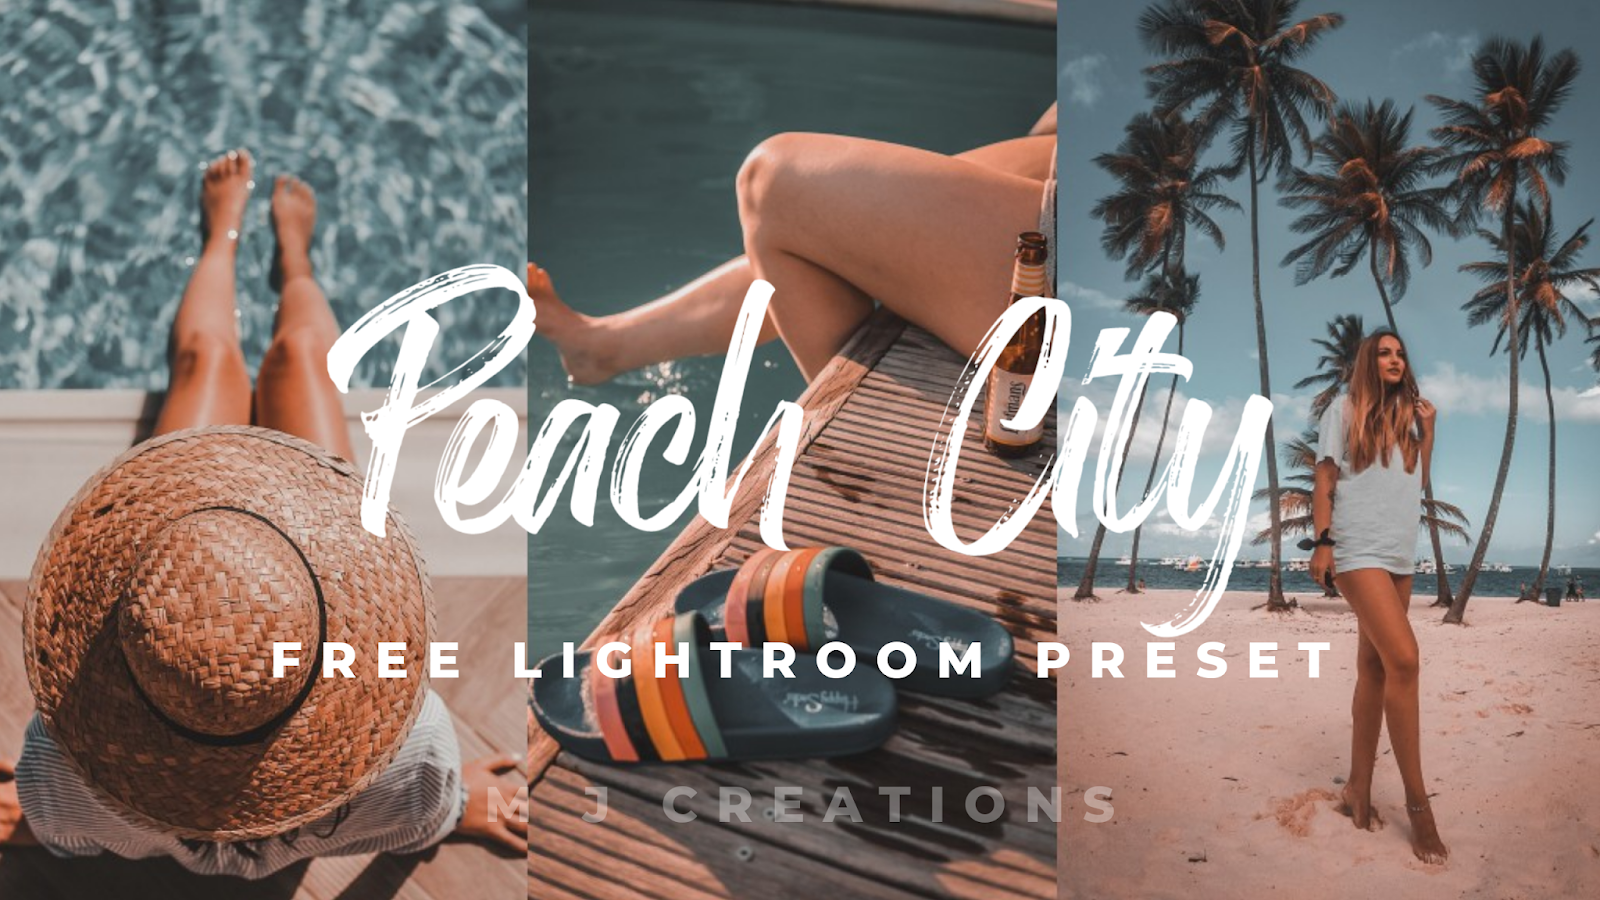 Peach City - Lightroom Mobile Preset - Free Lightroom Presets